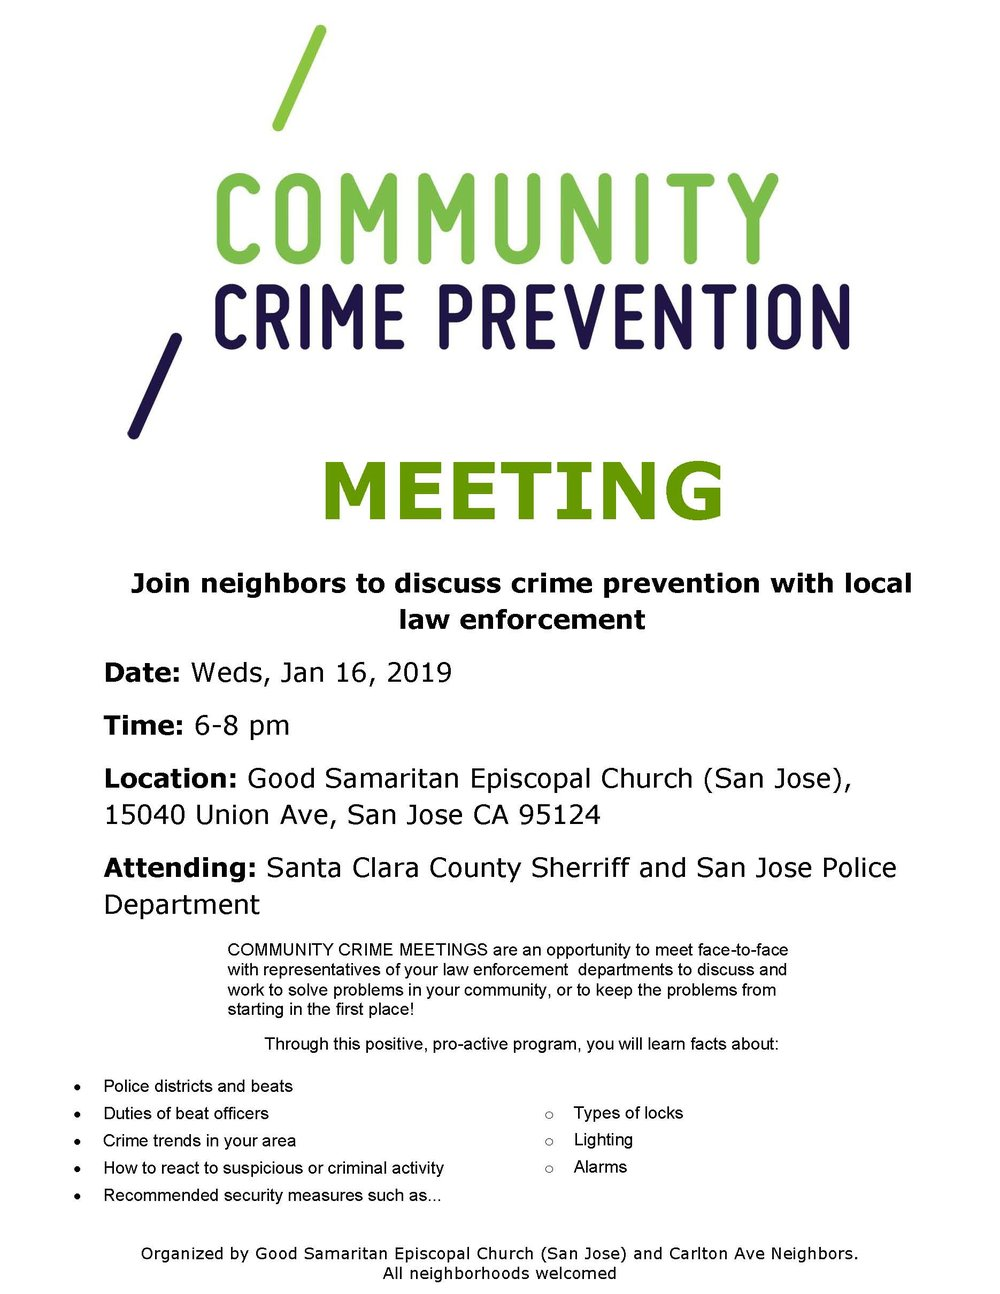 UPDATED COMMUNITY CRIME MEETINGS.jpg